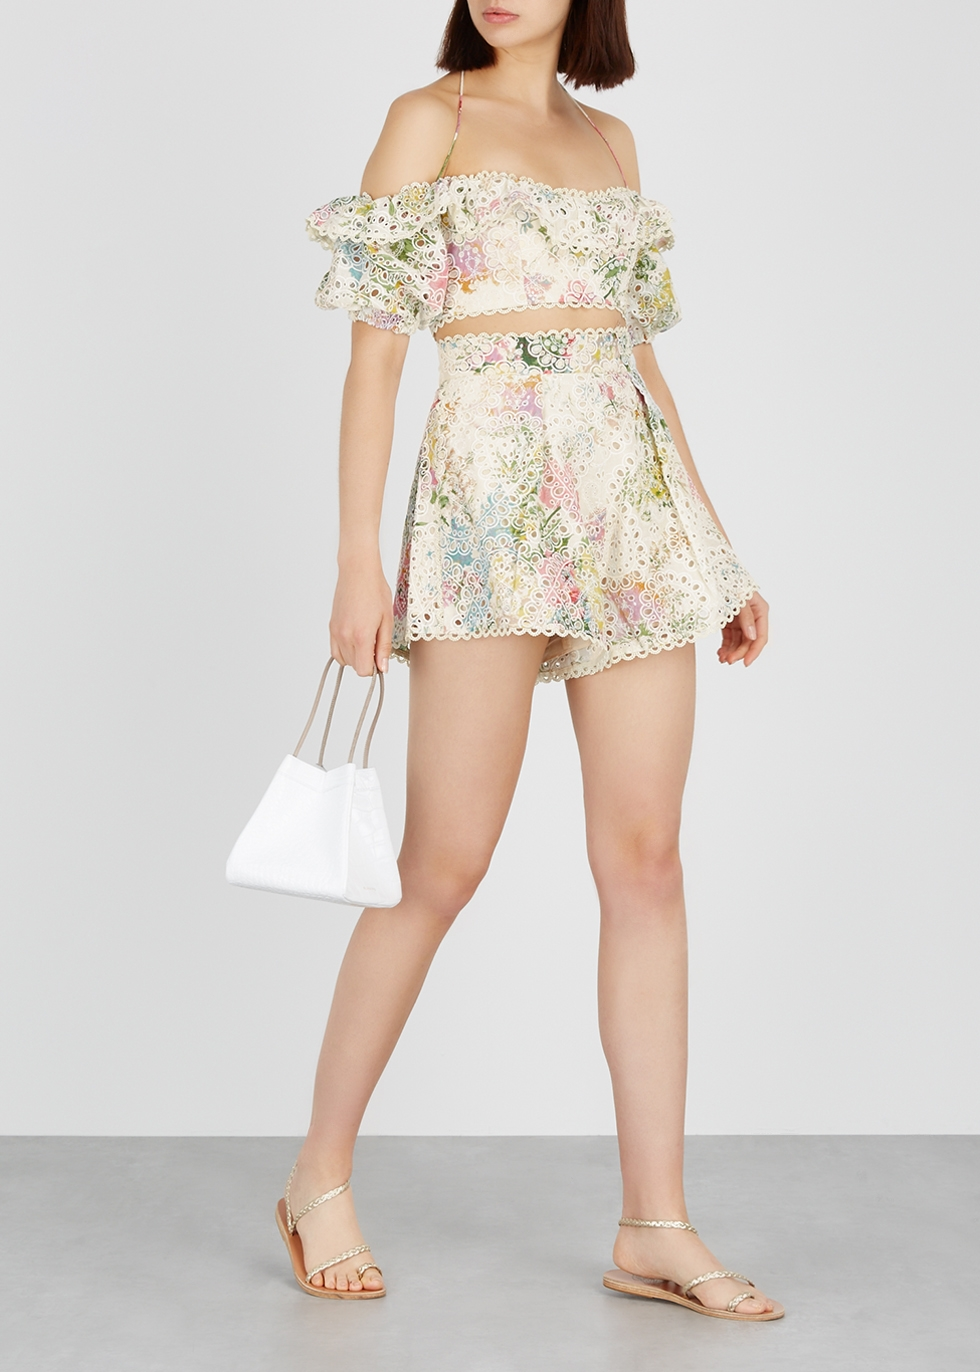 Heathers printed open-shoulder top - Zimmermann